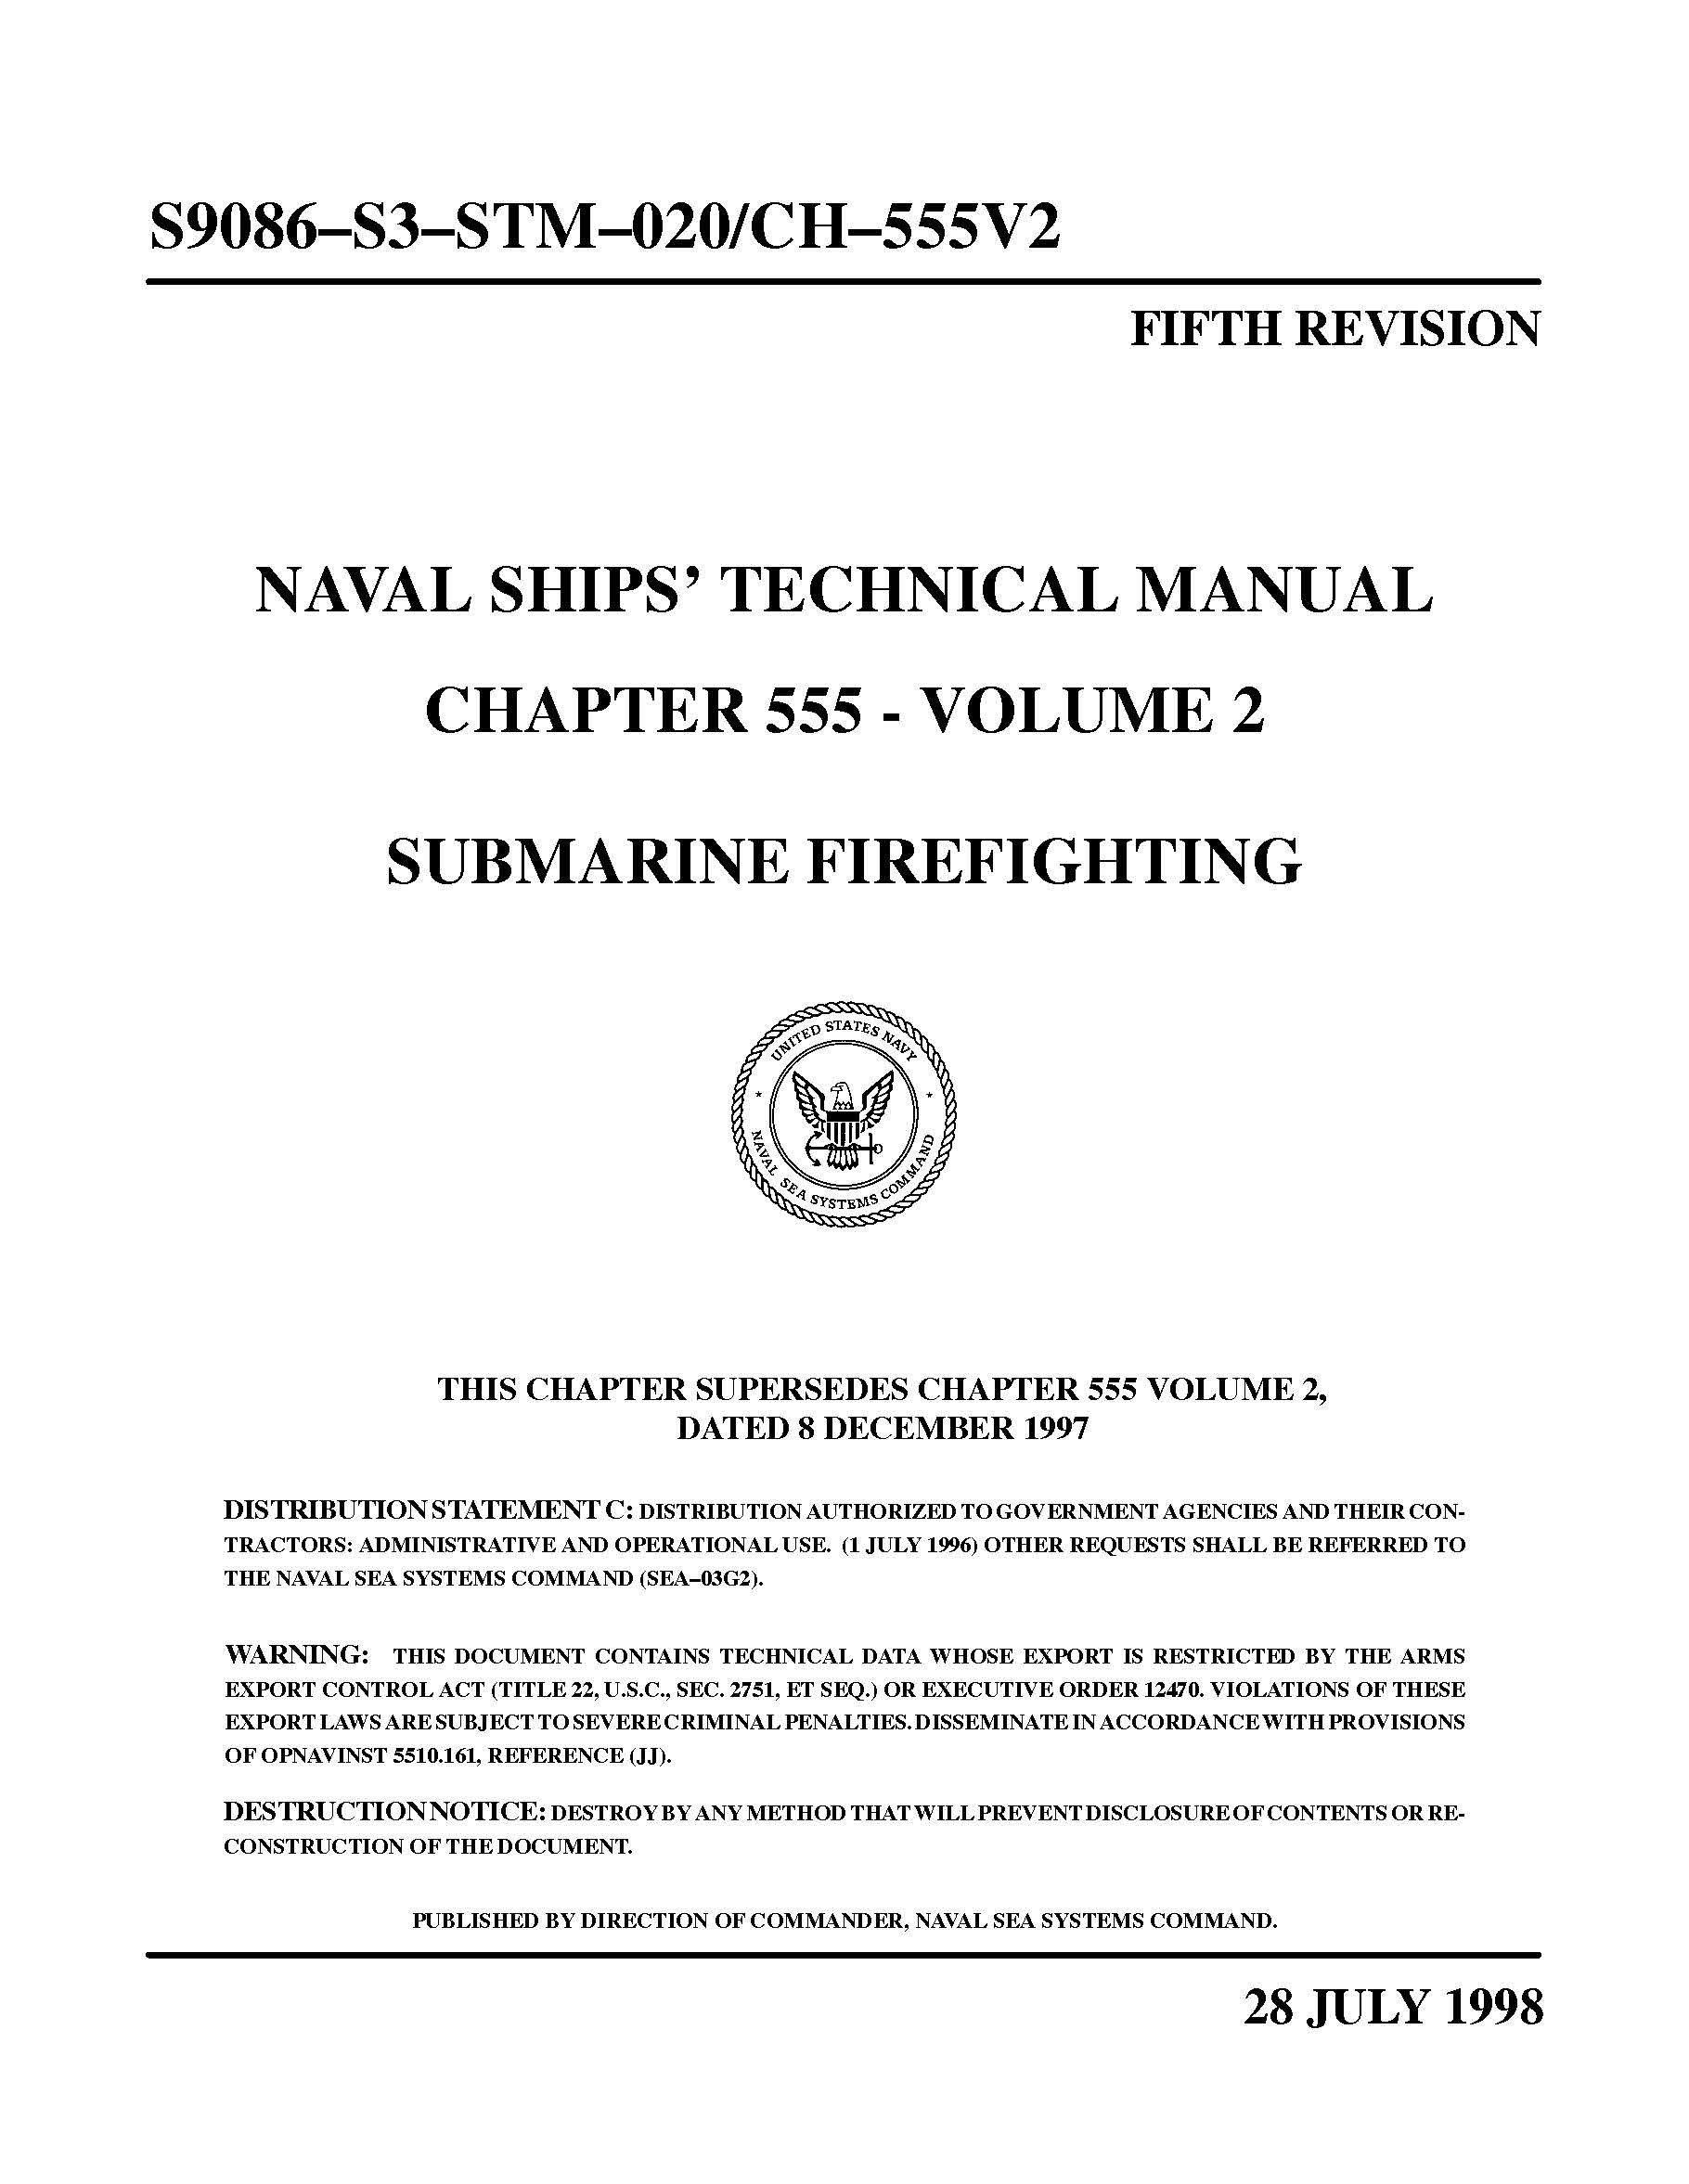 SUBMARINE FIREFIGHTING CHAPTER 555 - VOLUME 2 1998 NAVAL SHIPS' TECHNICAL  MANUAL [Loose Leaf Edition]: U.S. Navy: Amazon.com: Books